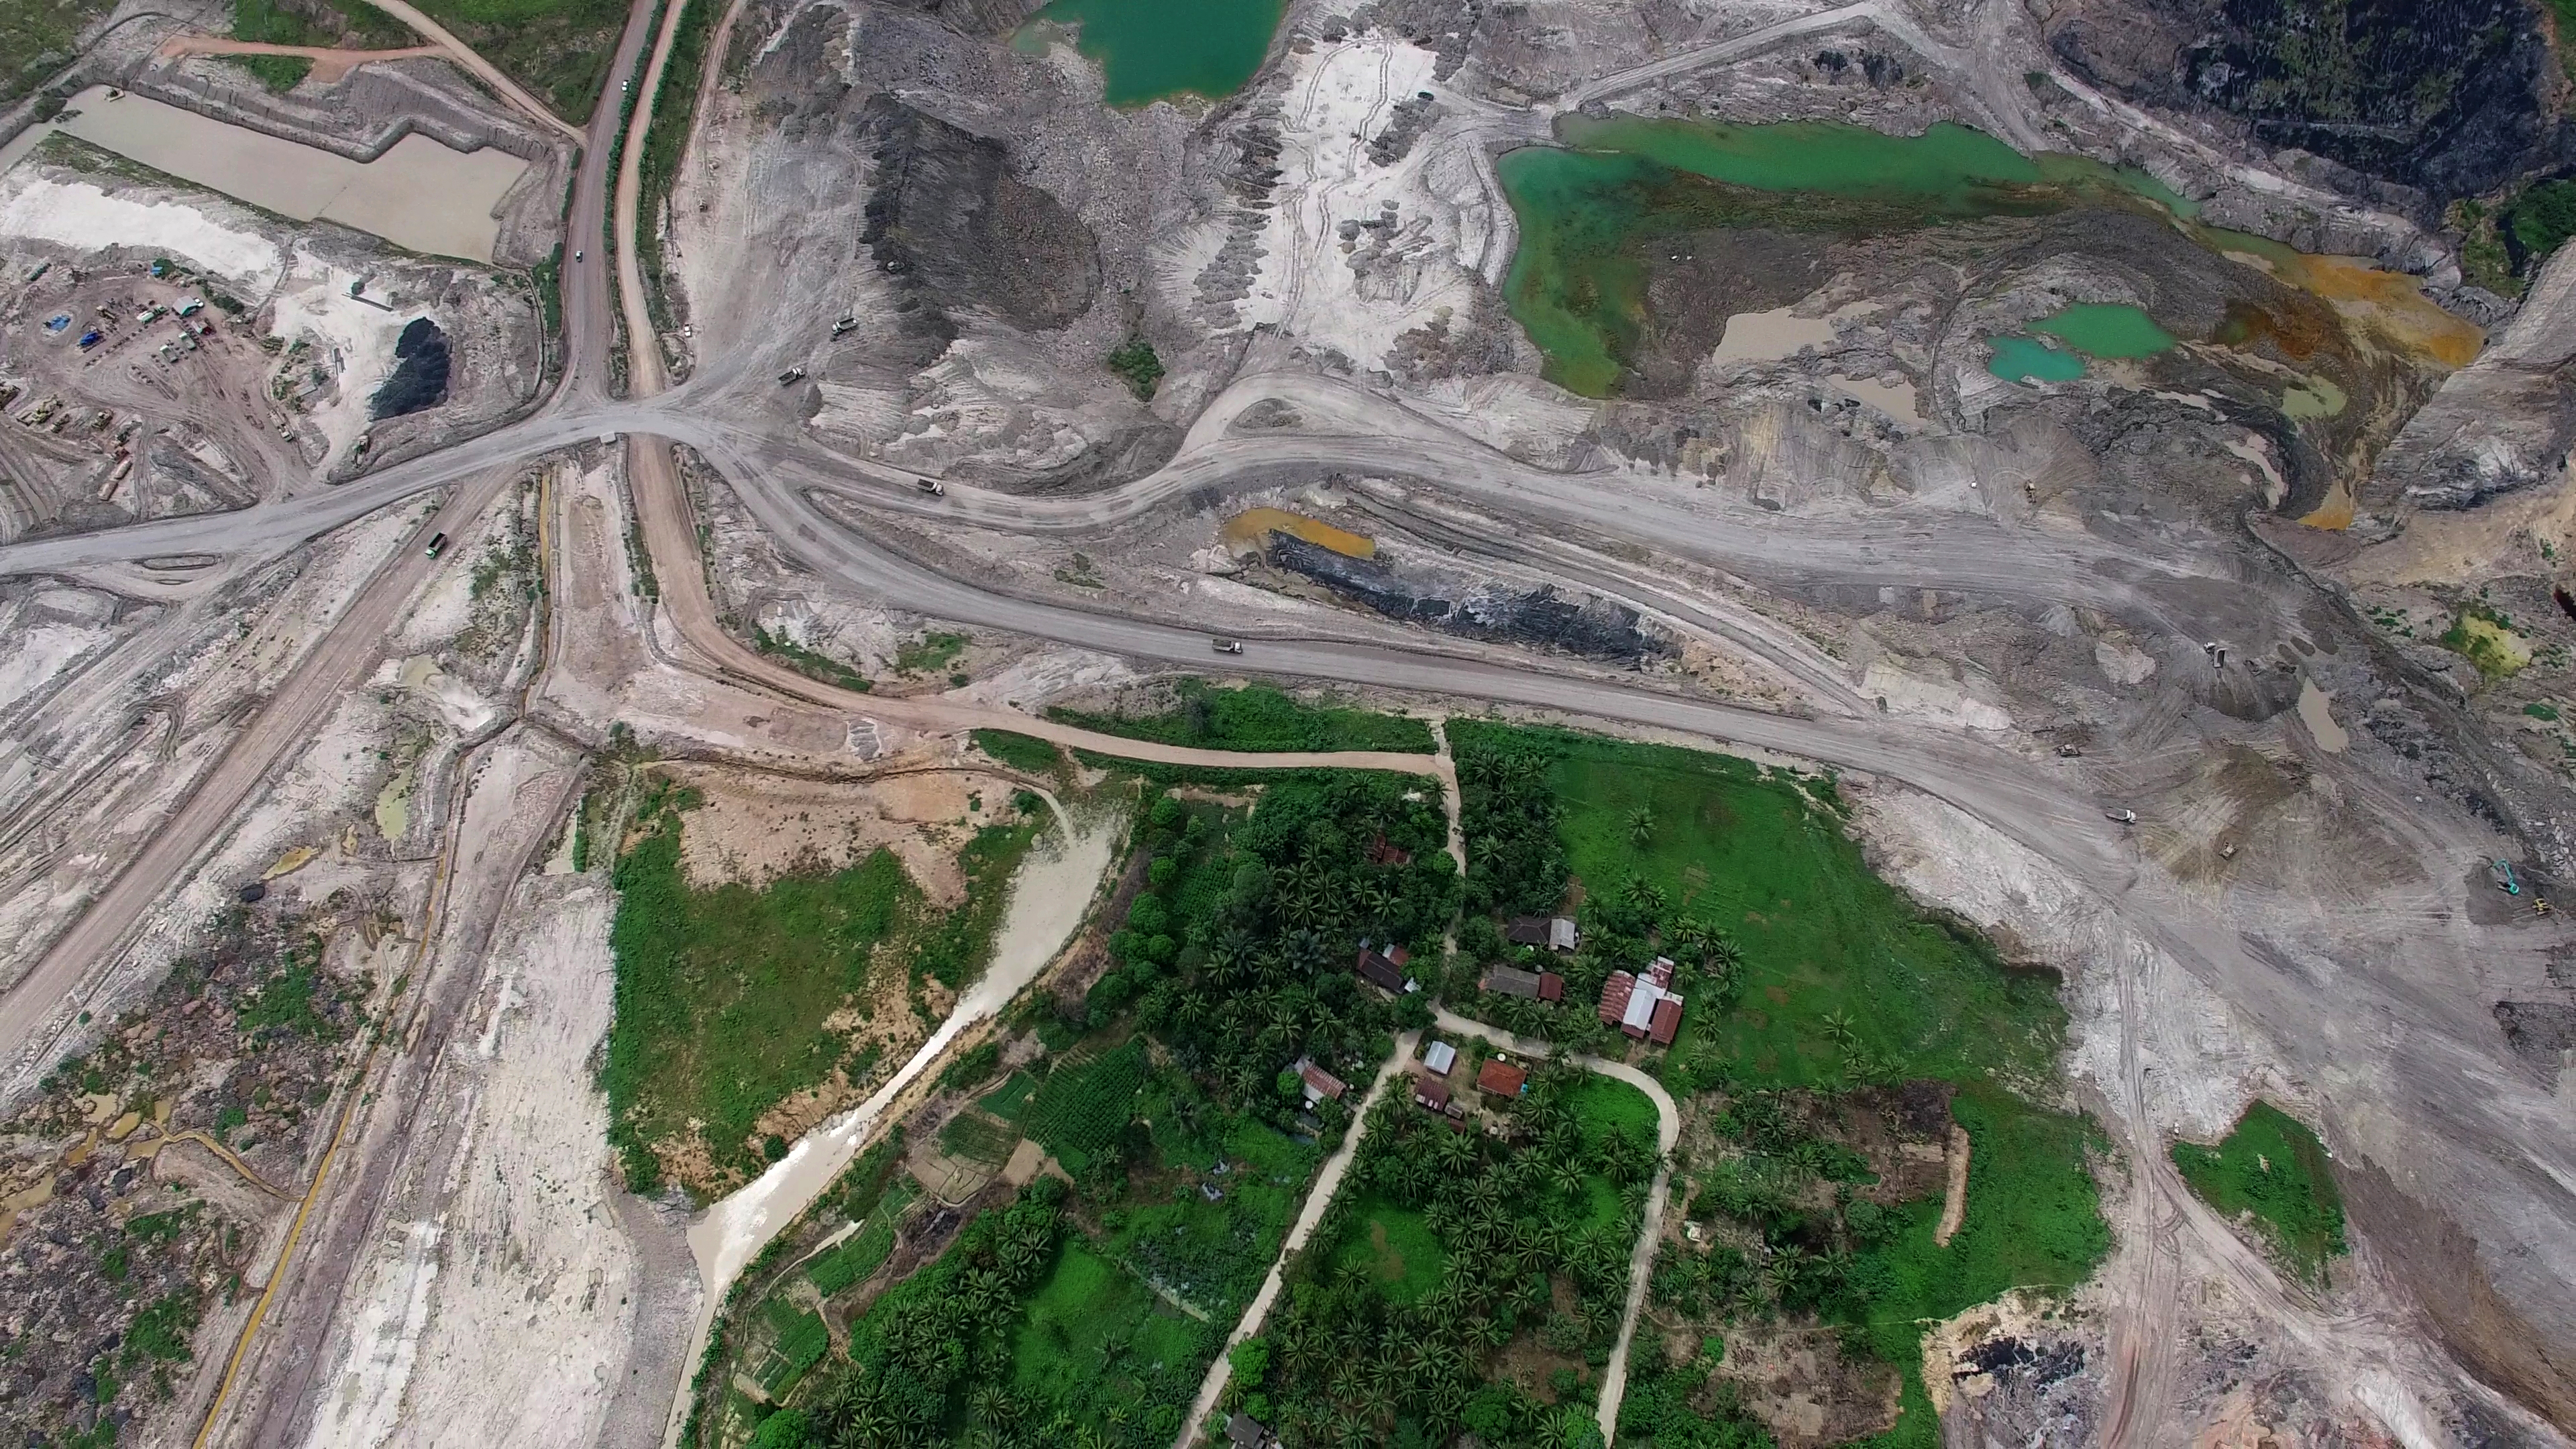 An image taken from a drone shows Kerta Buana village surrounded by a coal mine owned by Banpu Public Company Ltd group in Kutai Kartanegara, East Kalimantan. Greenpeace released an investigative report that shows how coal mining activities in East Kalimantan are destroying landscapes and polluting the water in the surrounding areas.